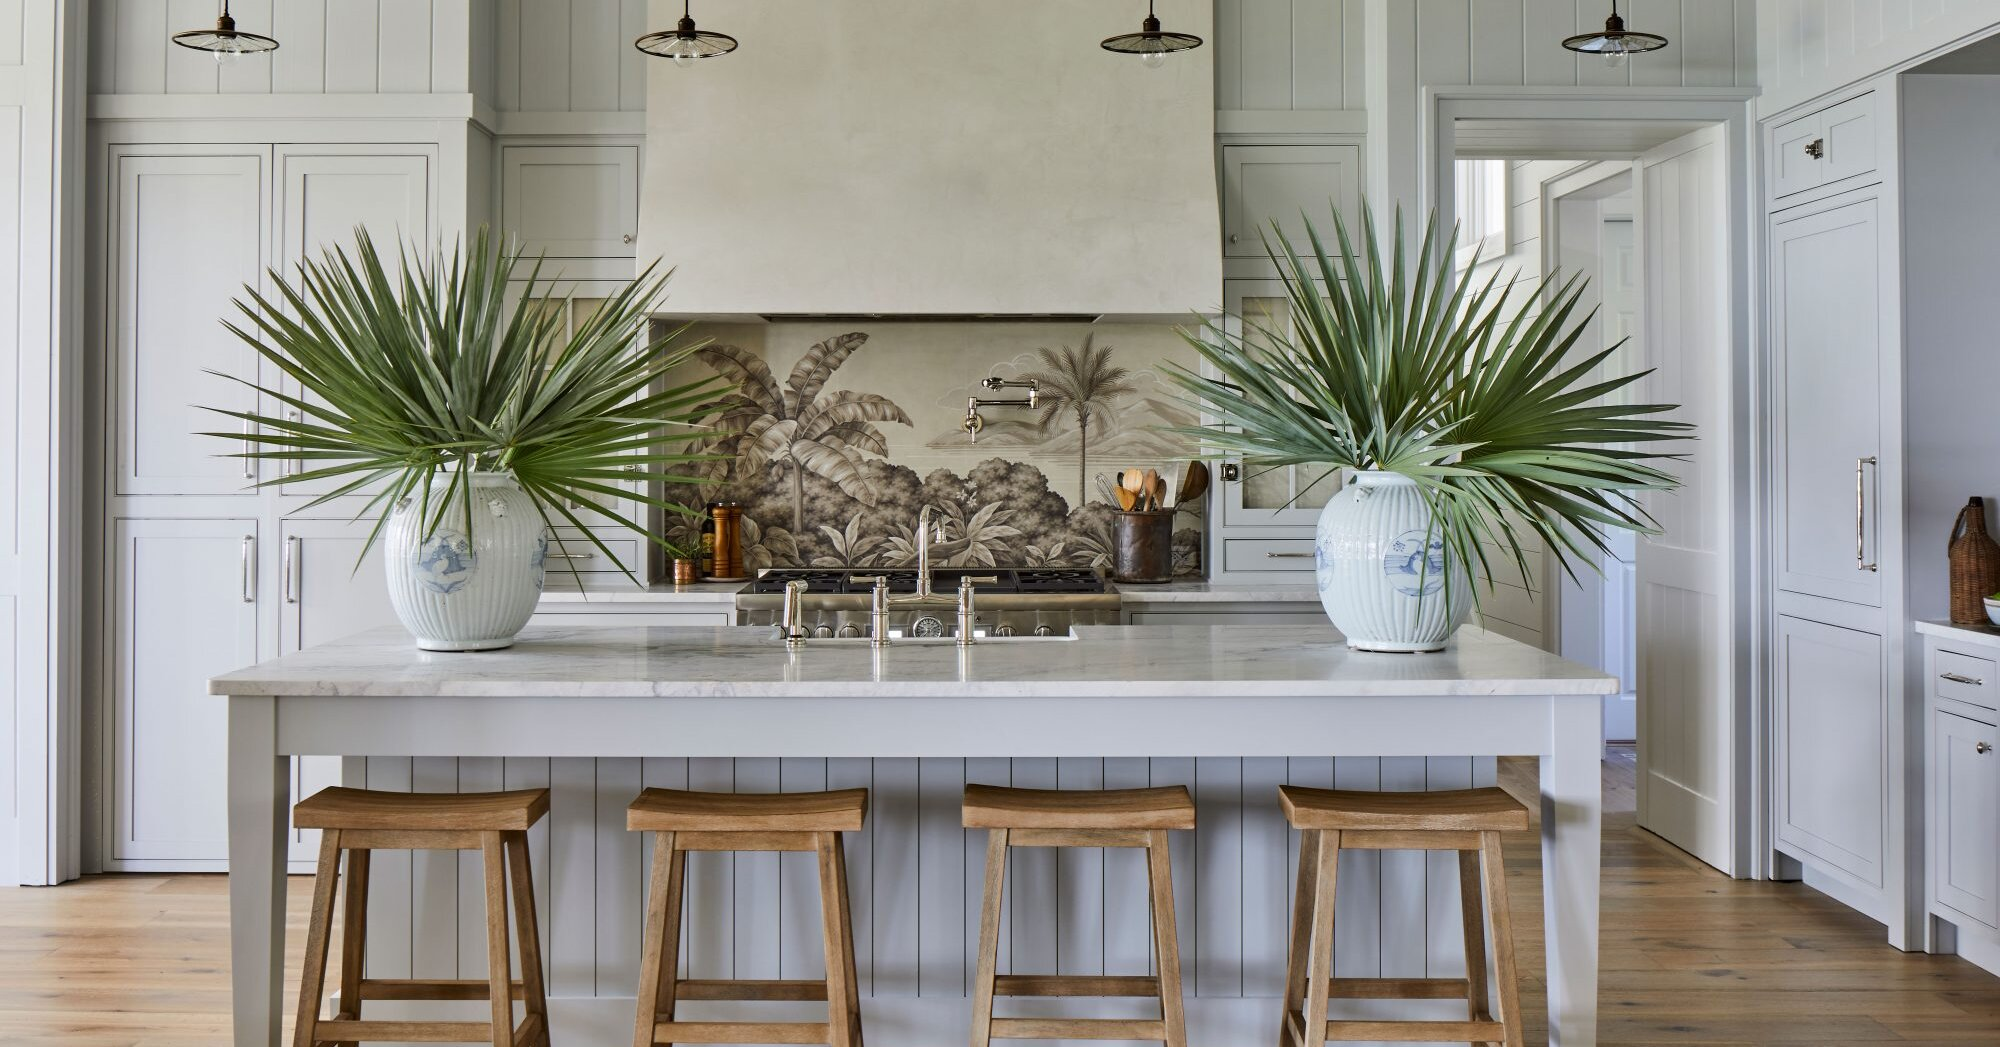 8 Home Decor Trends That Will Be Huge In 2020 Southern Living